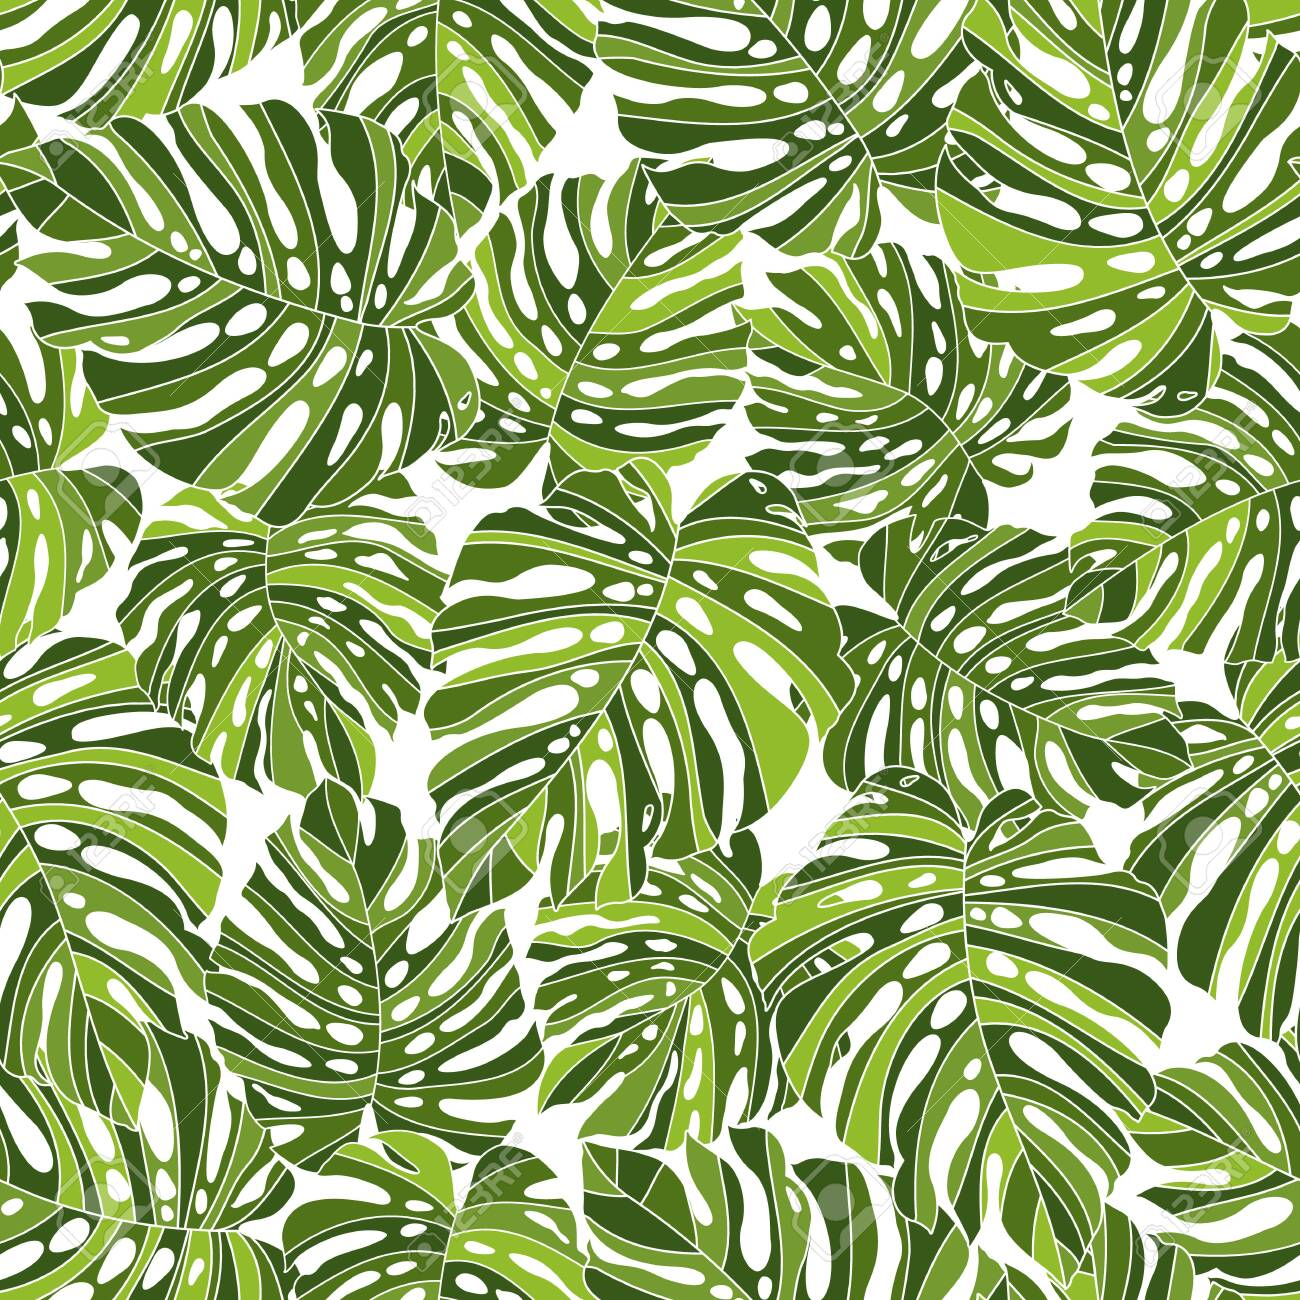 Tropical Plant Seams Pattern Illustration I Designed a Dramatic Plant, This Picture Is Seamless, It Is a Vector Work - 149252655